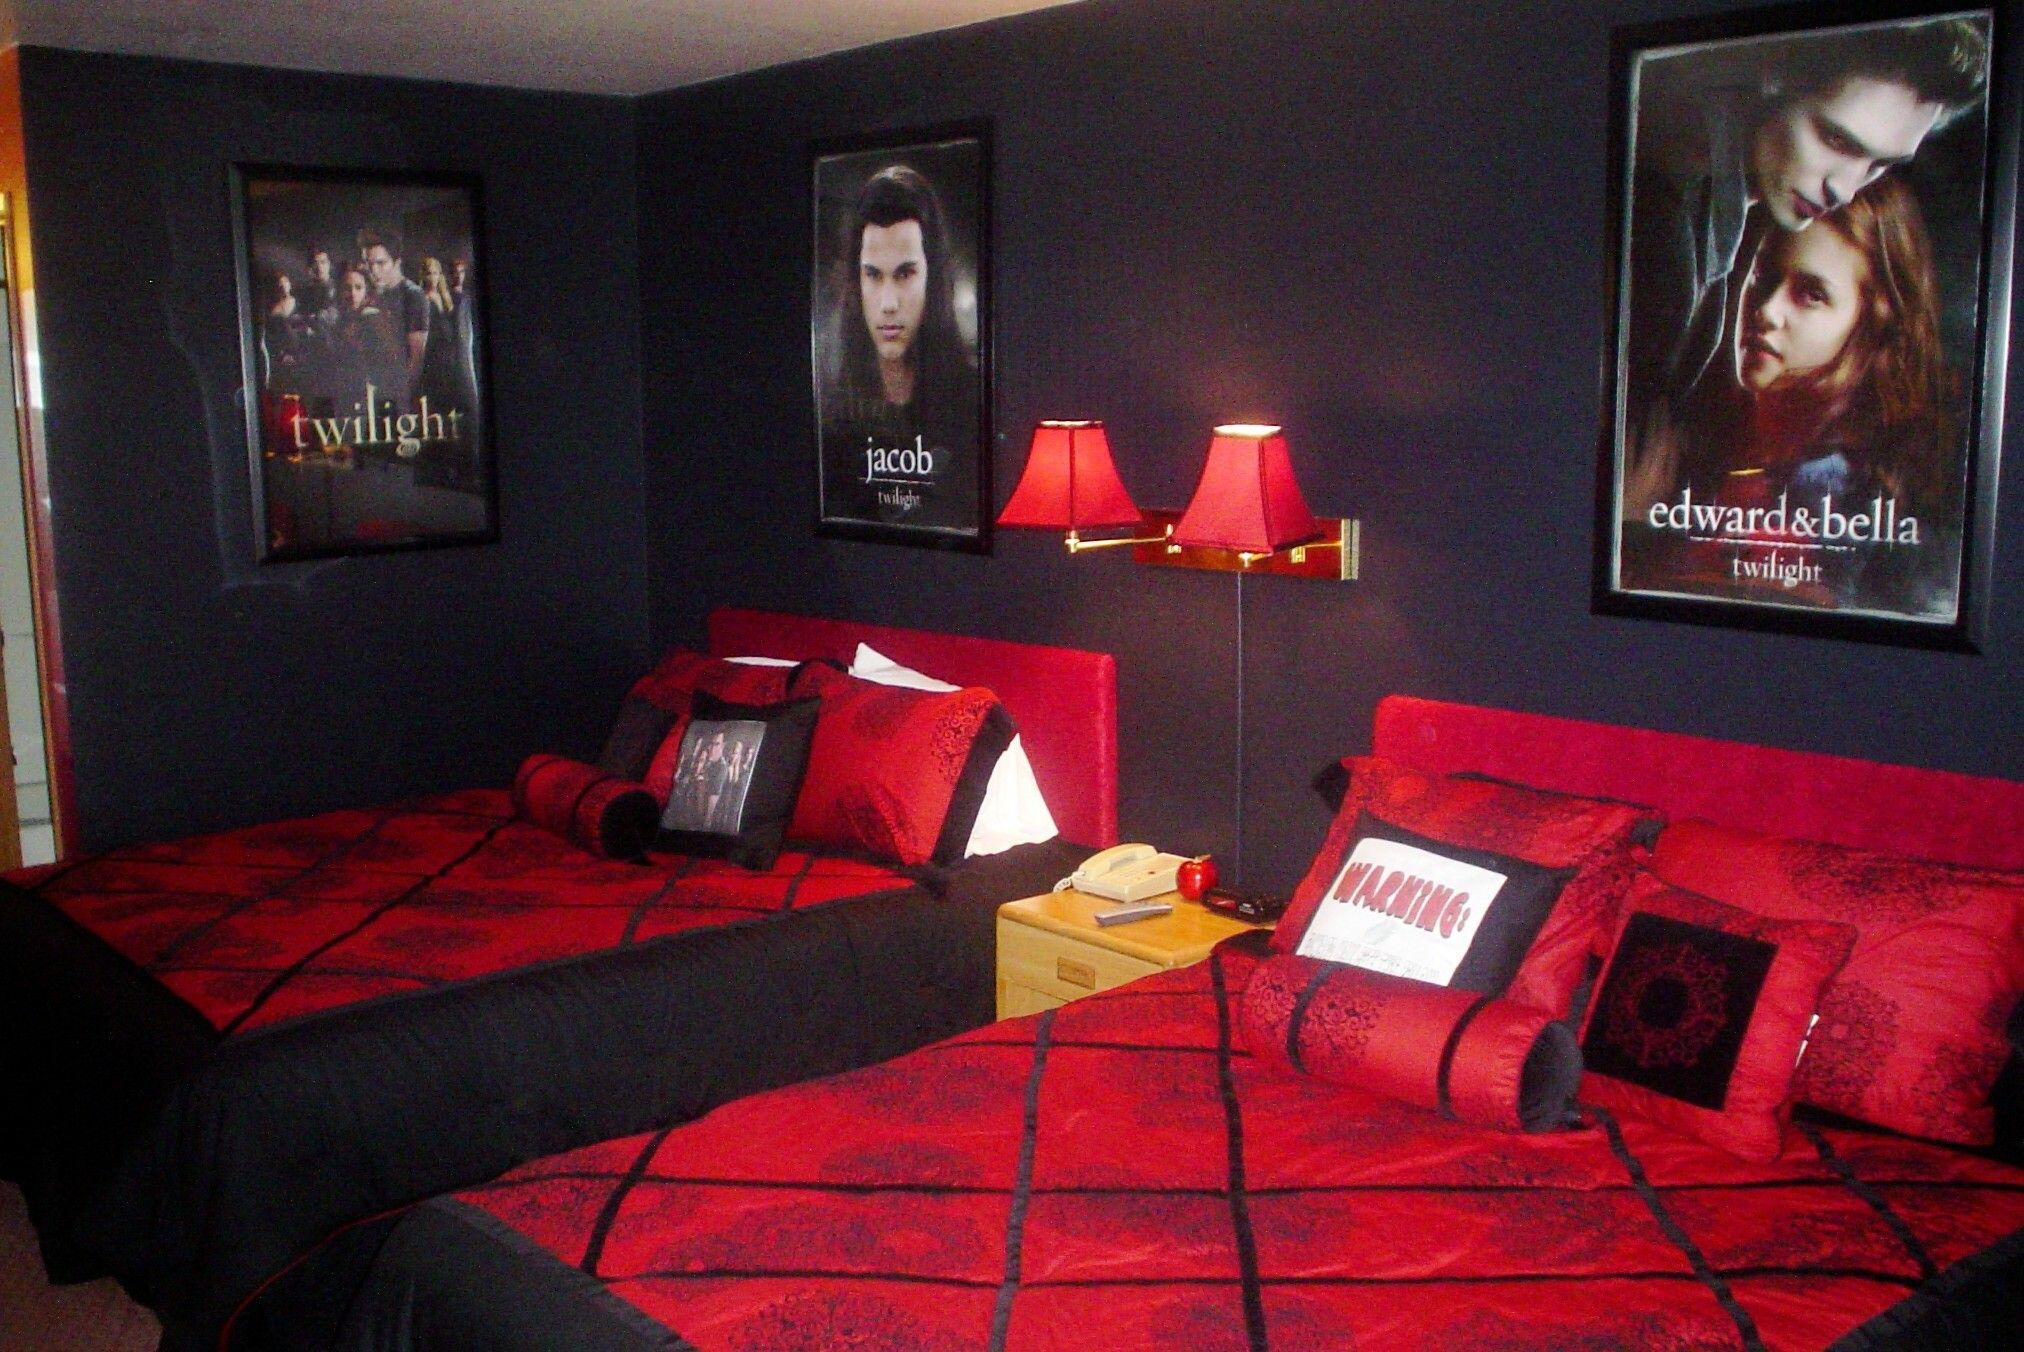 The Twilight Room At Pacific Inn Motel In Forks Washington No Way Ashley Would Have Ed If She Saw This